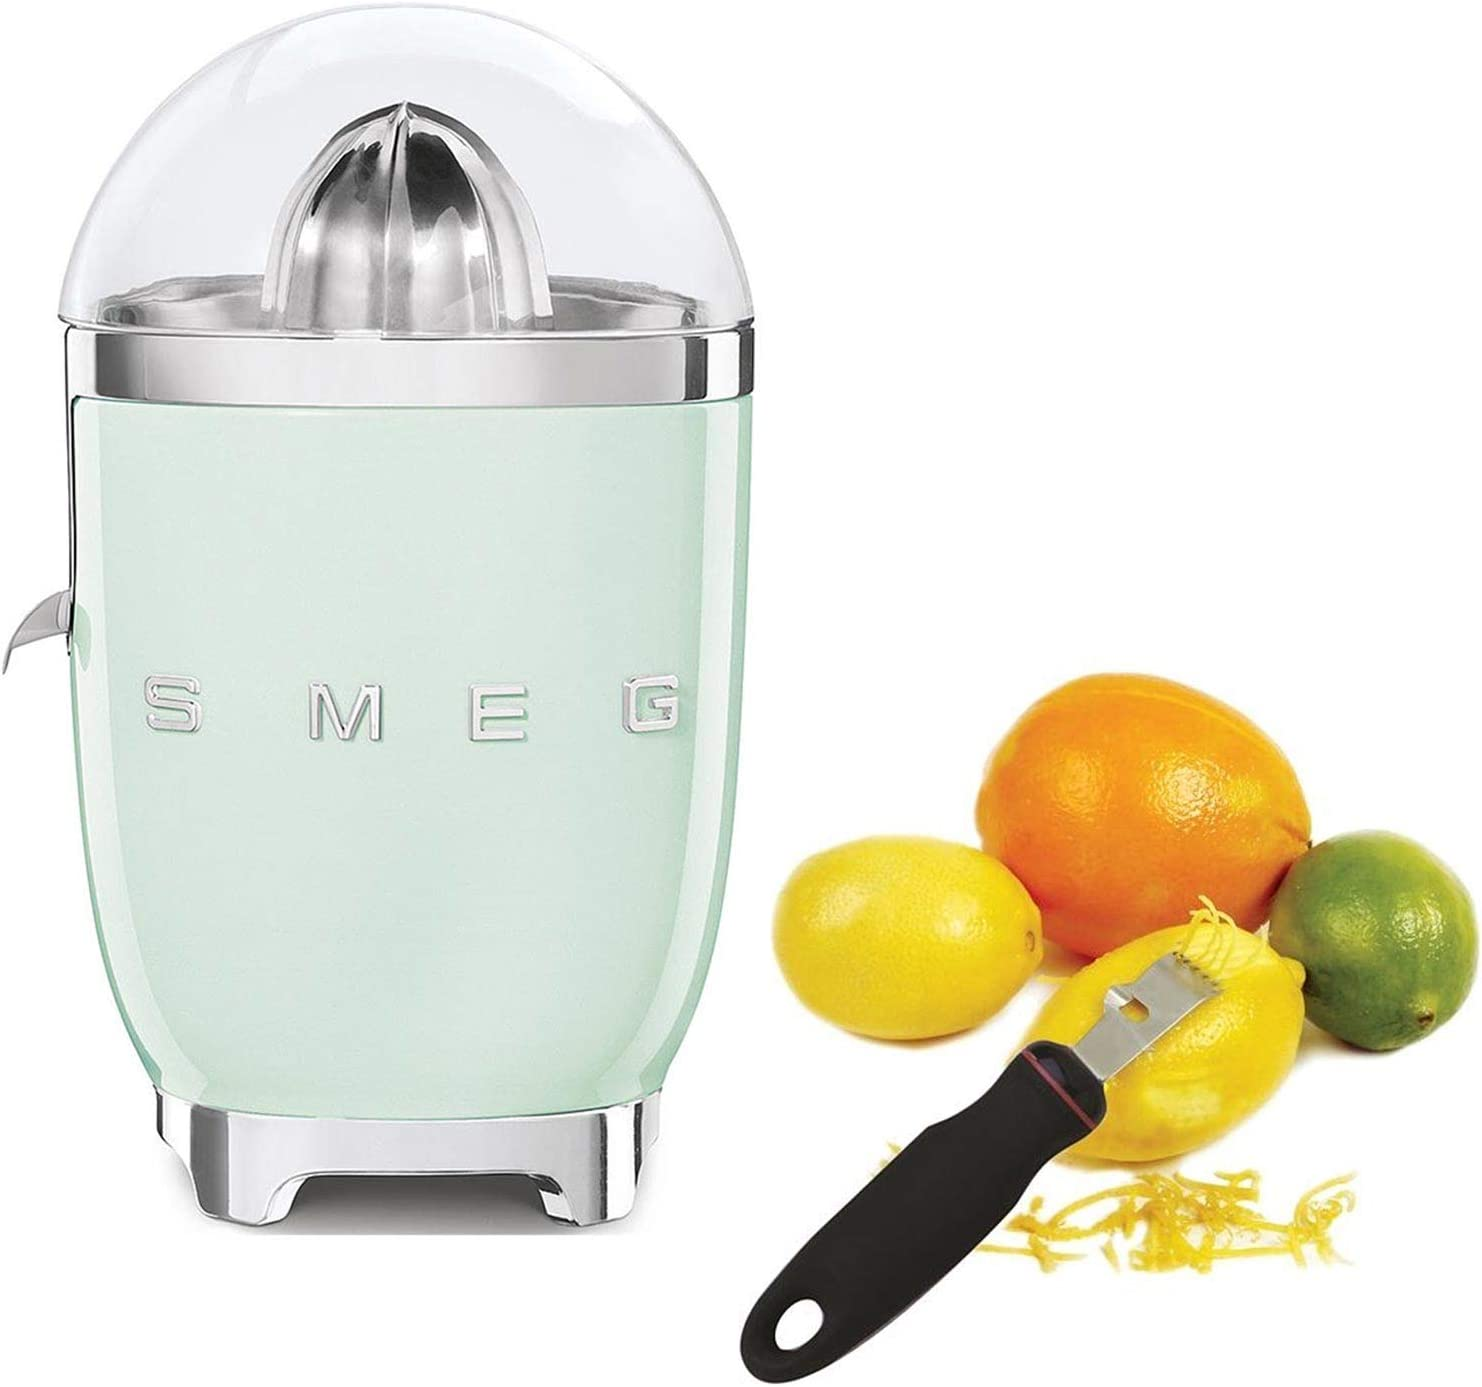 Smeg CJF01PGUS Powder Coated Vintage Style Citrus Juicer Bundle with Norpro 113 Grip-Ez Zester/Stripper - Pastel Green